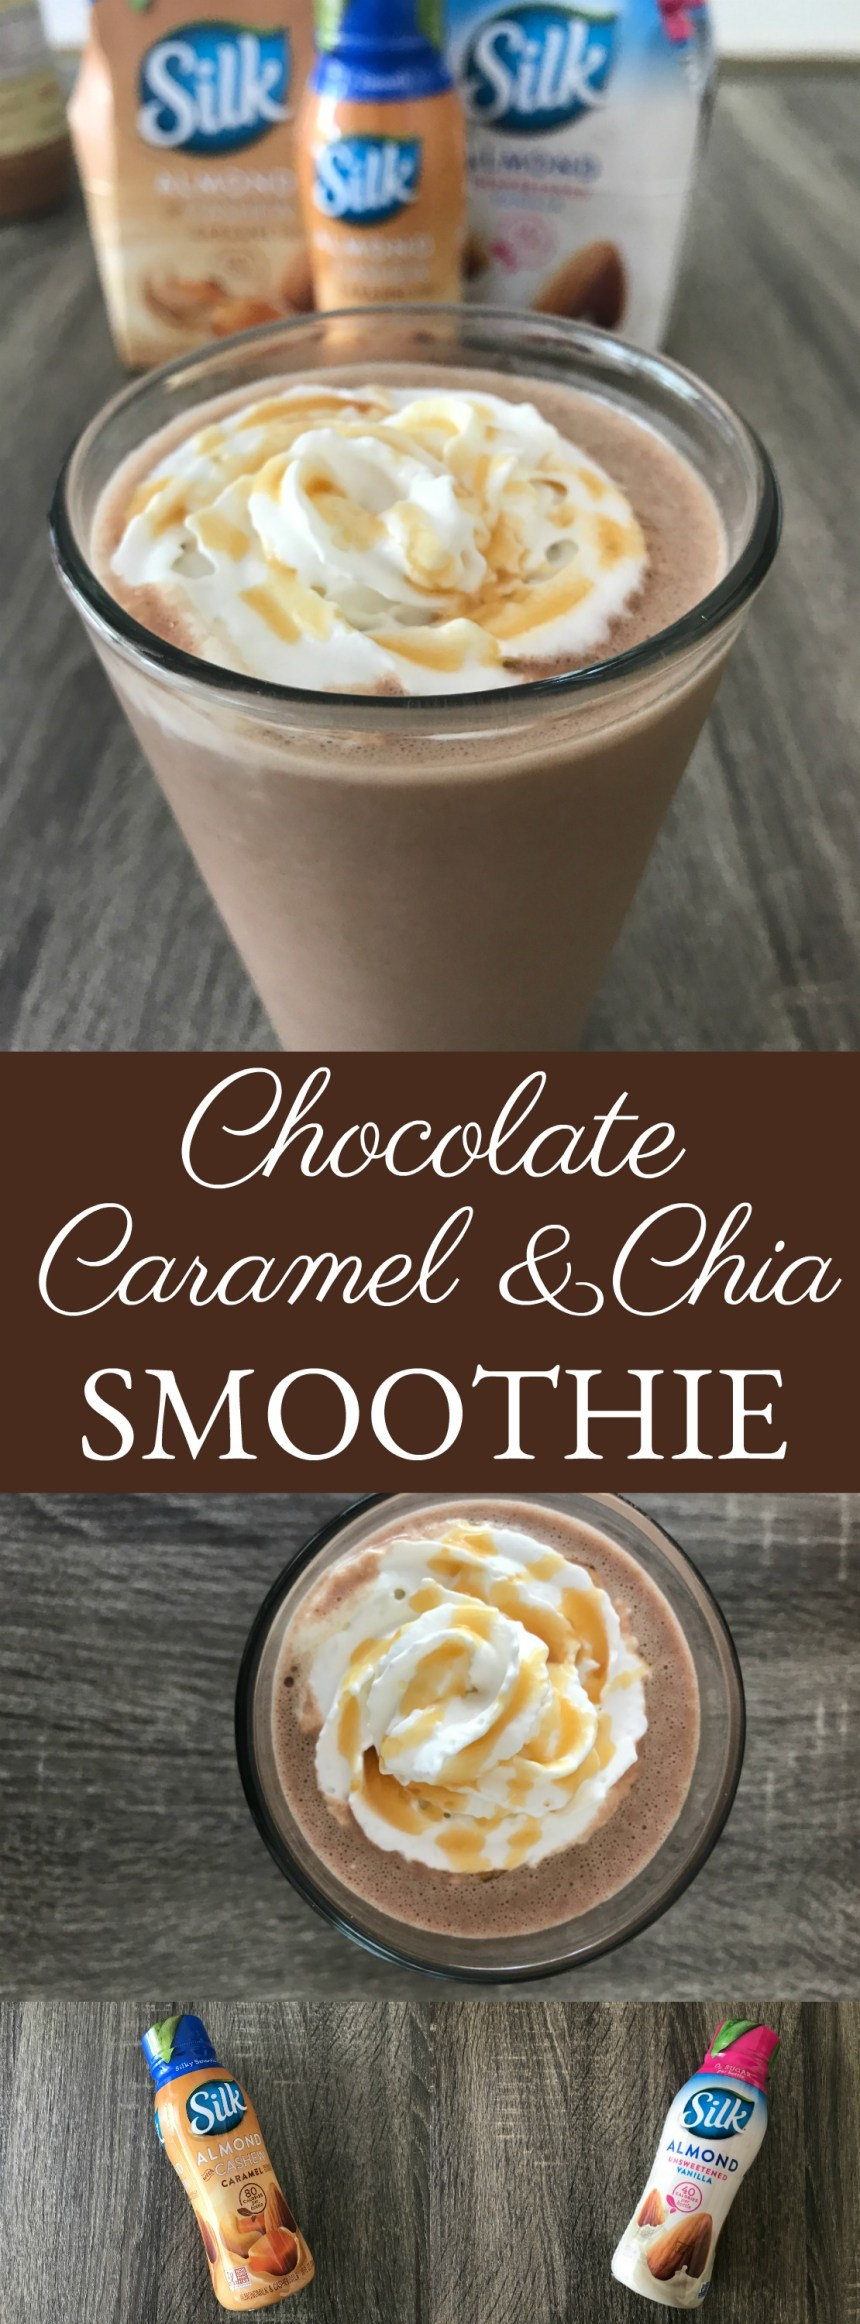 Chocolate Caramel Chia Smoothie // Money Savvy Living // #PlantBasedGoodness